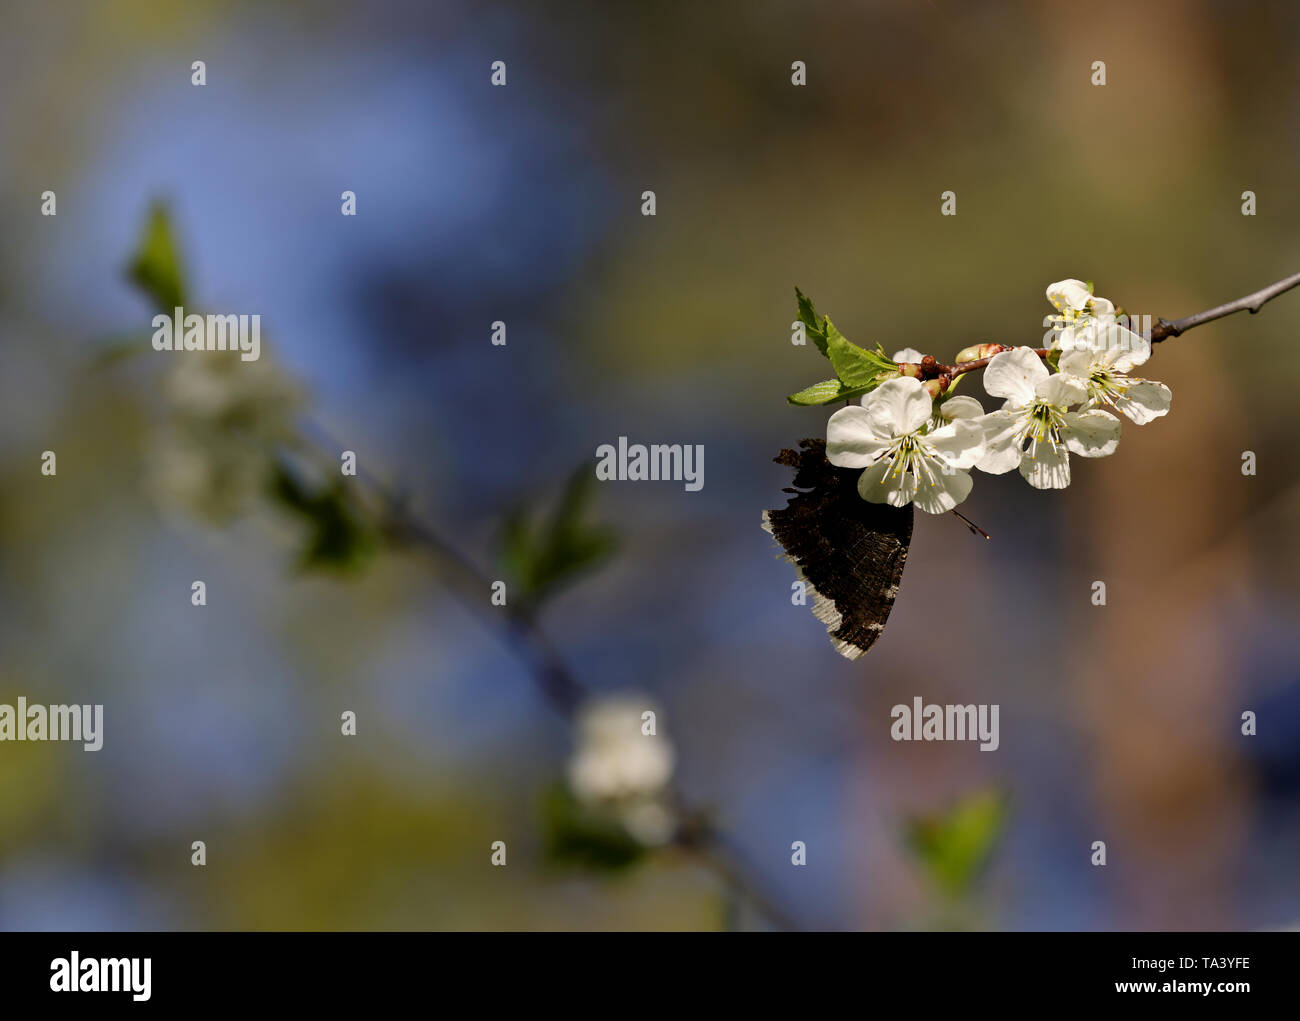 Nymphalis antiopa (Mourning Cloak or Camberwell beauty) on a beautiful  cherry branch in spring - Stock Image